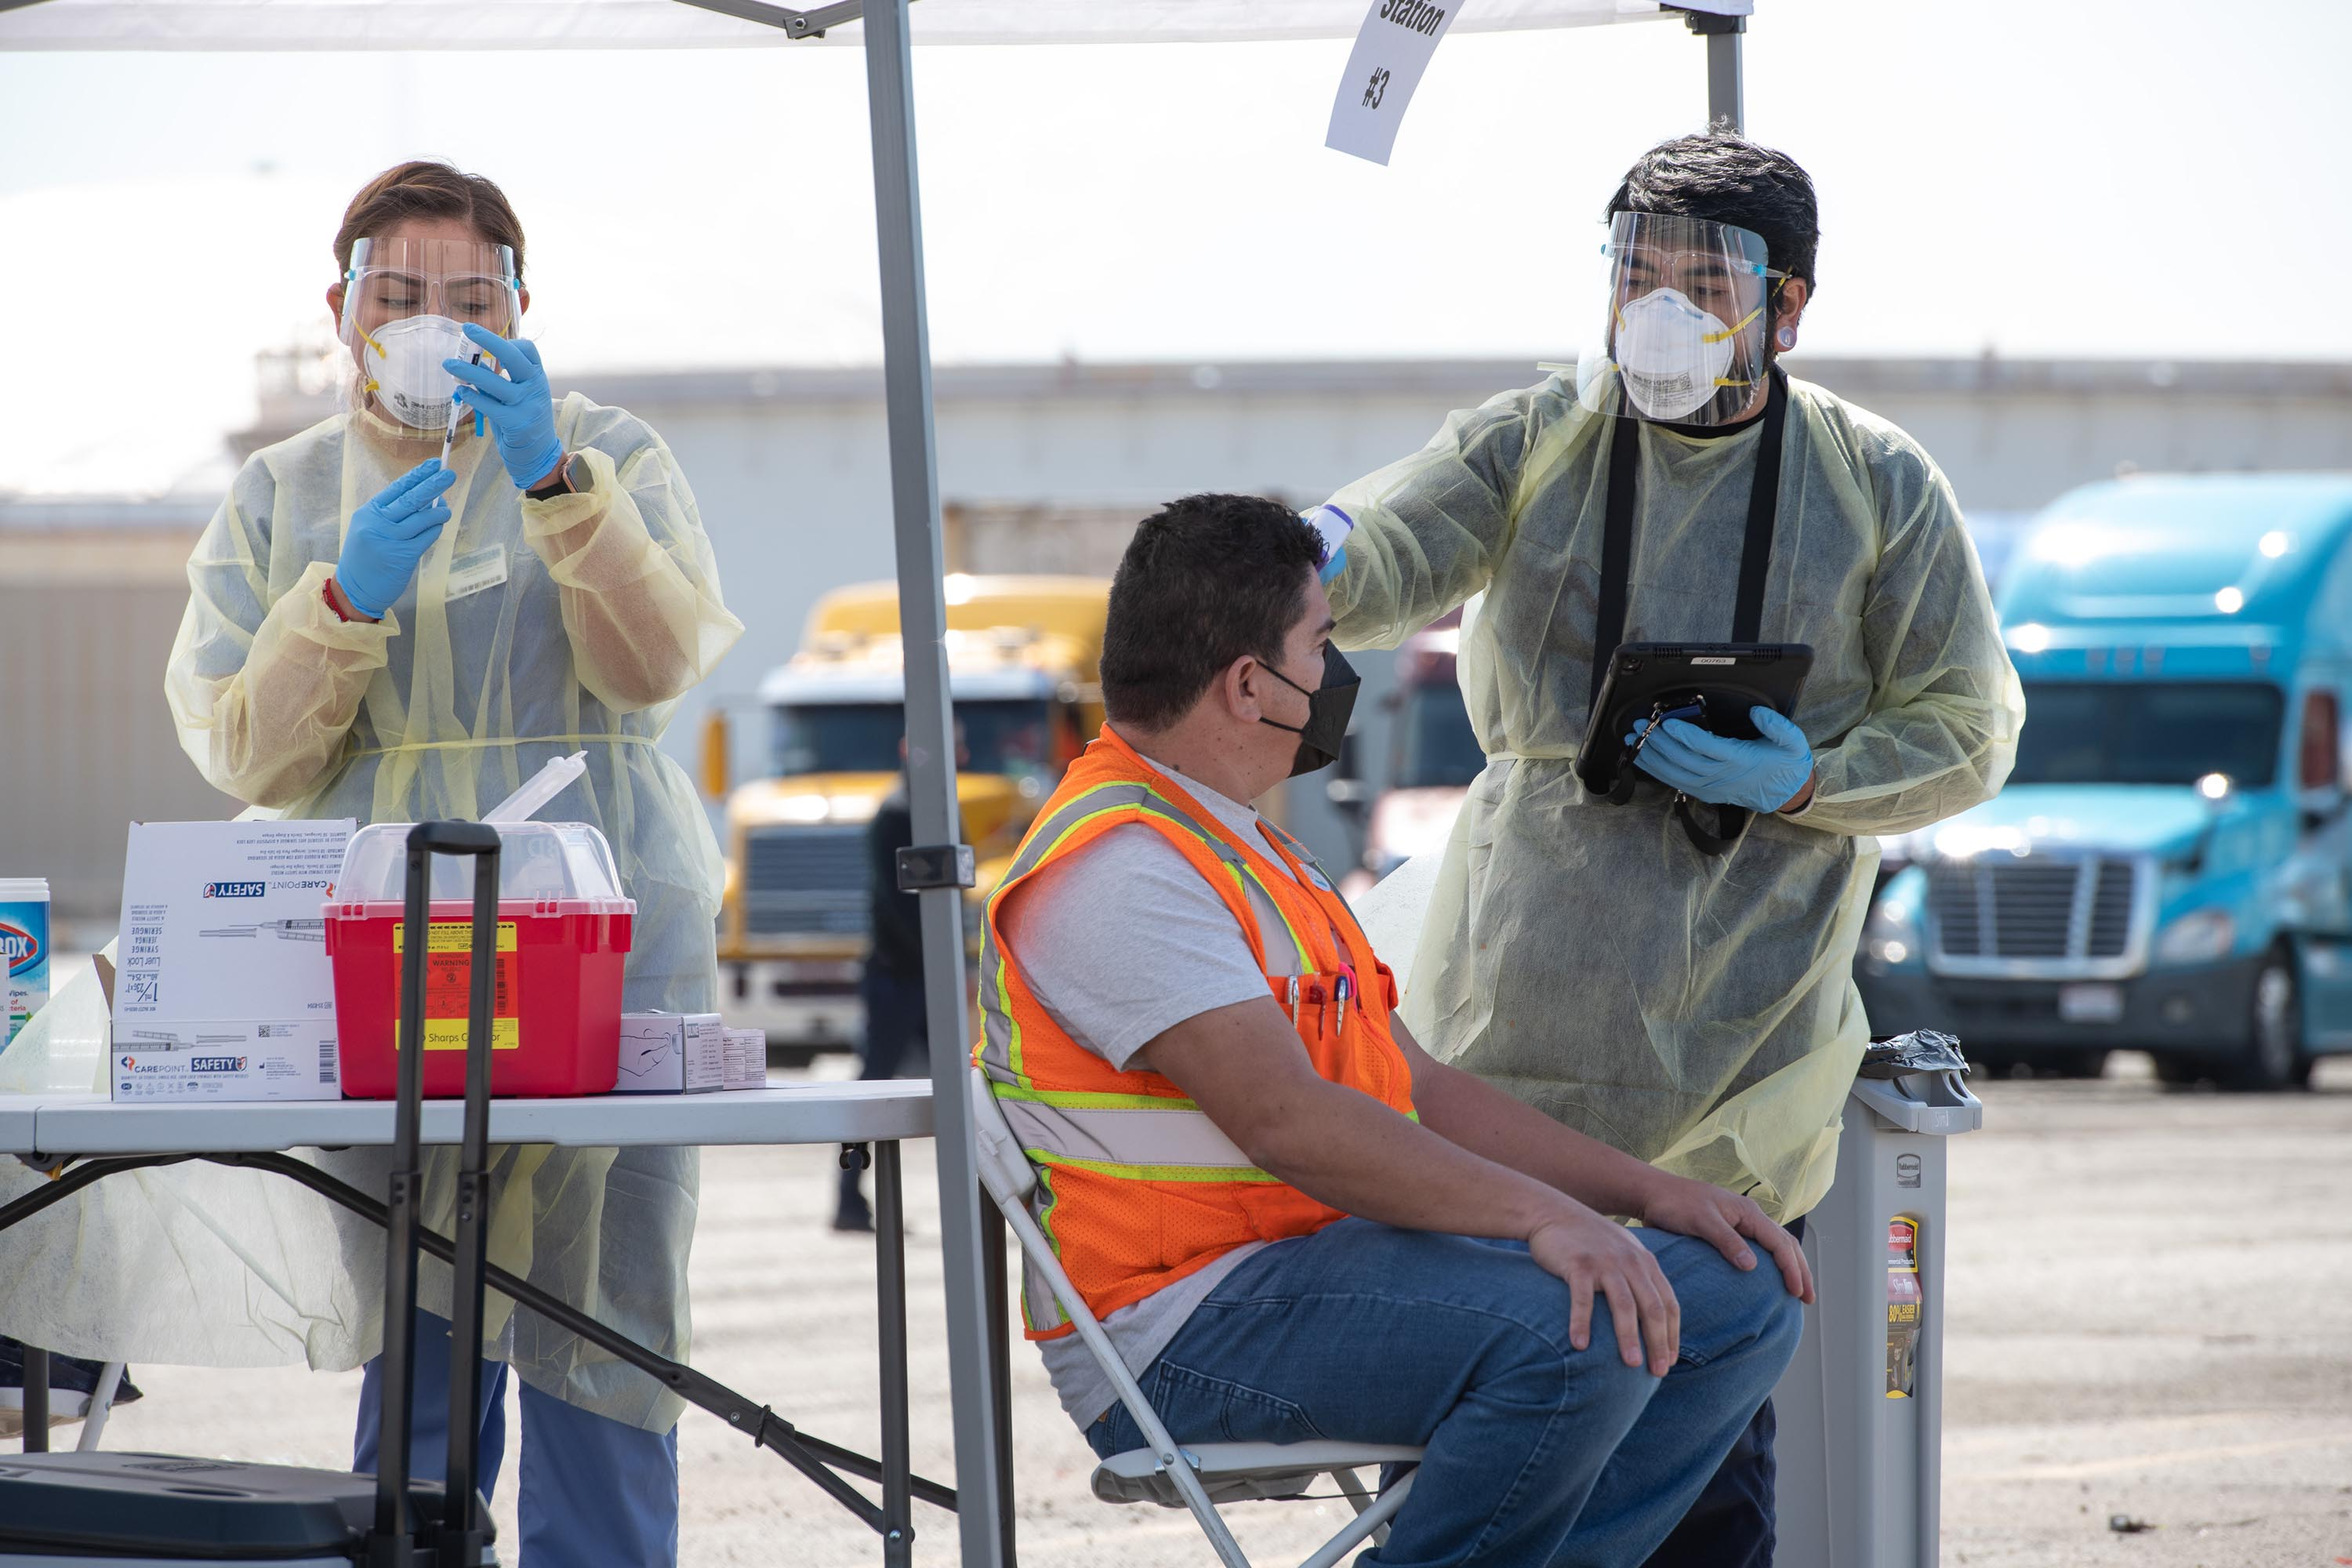 District 1 – Supervisor Hilda L. Solis<br> <b>March 12, 2021 - Northeast Community Clinic and Teamsters Union Vaccine Site</b><br> <i>Photo by Bryan Chan / Board of Supervisors</i>